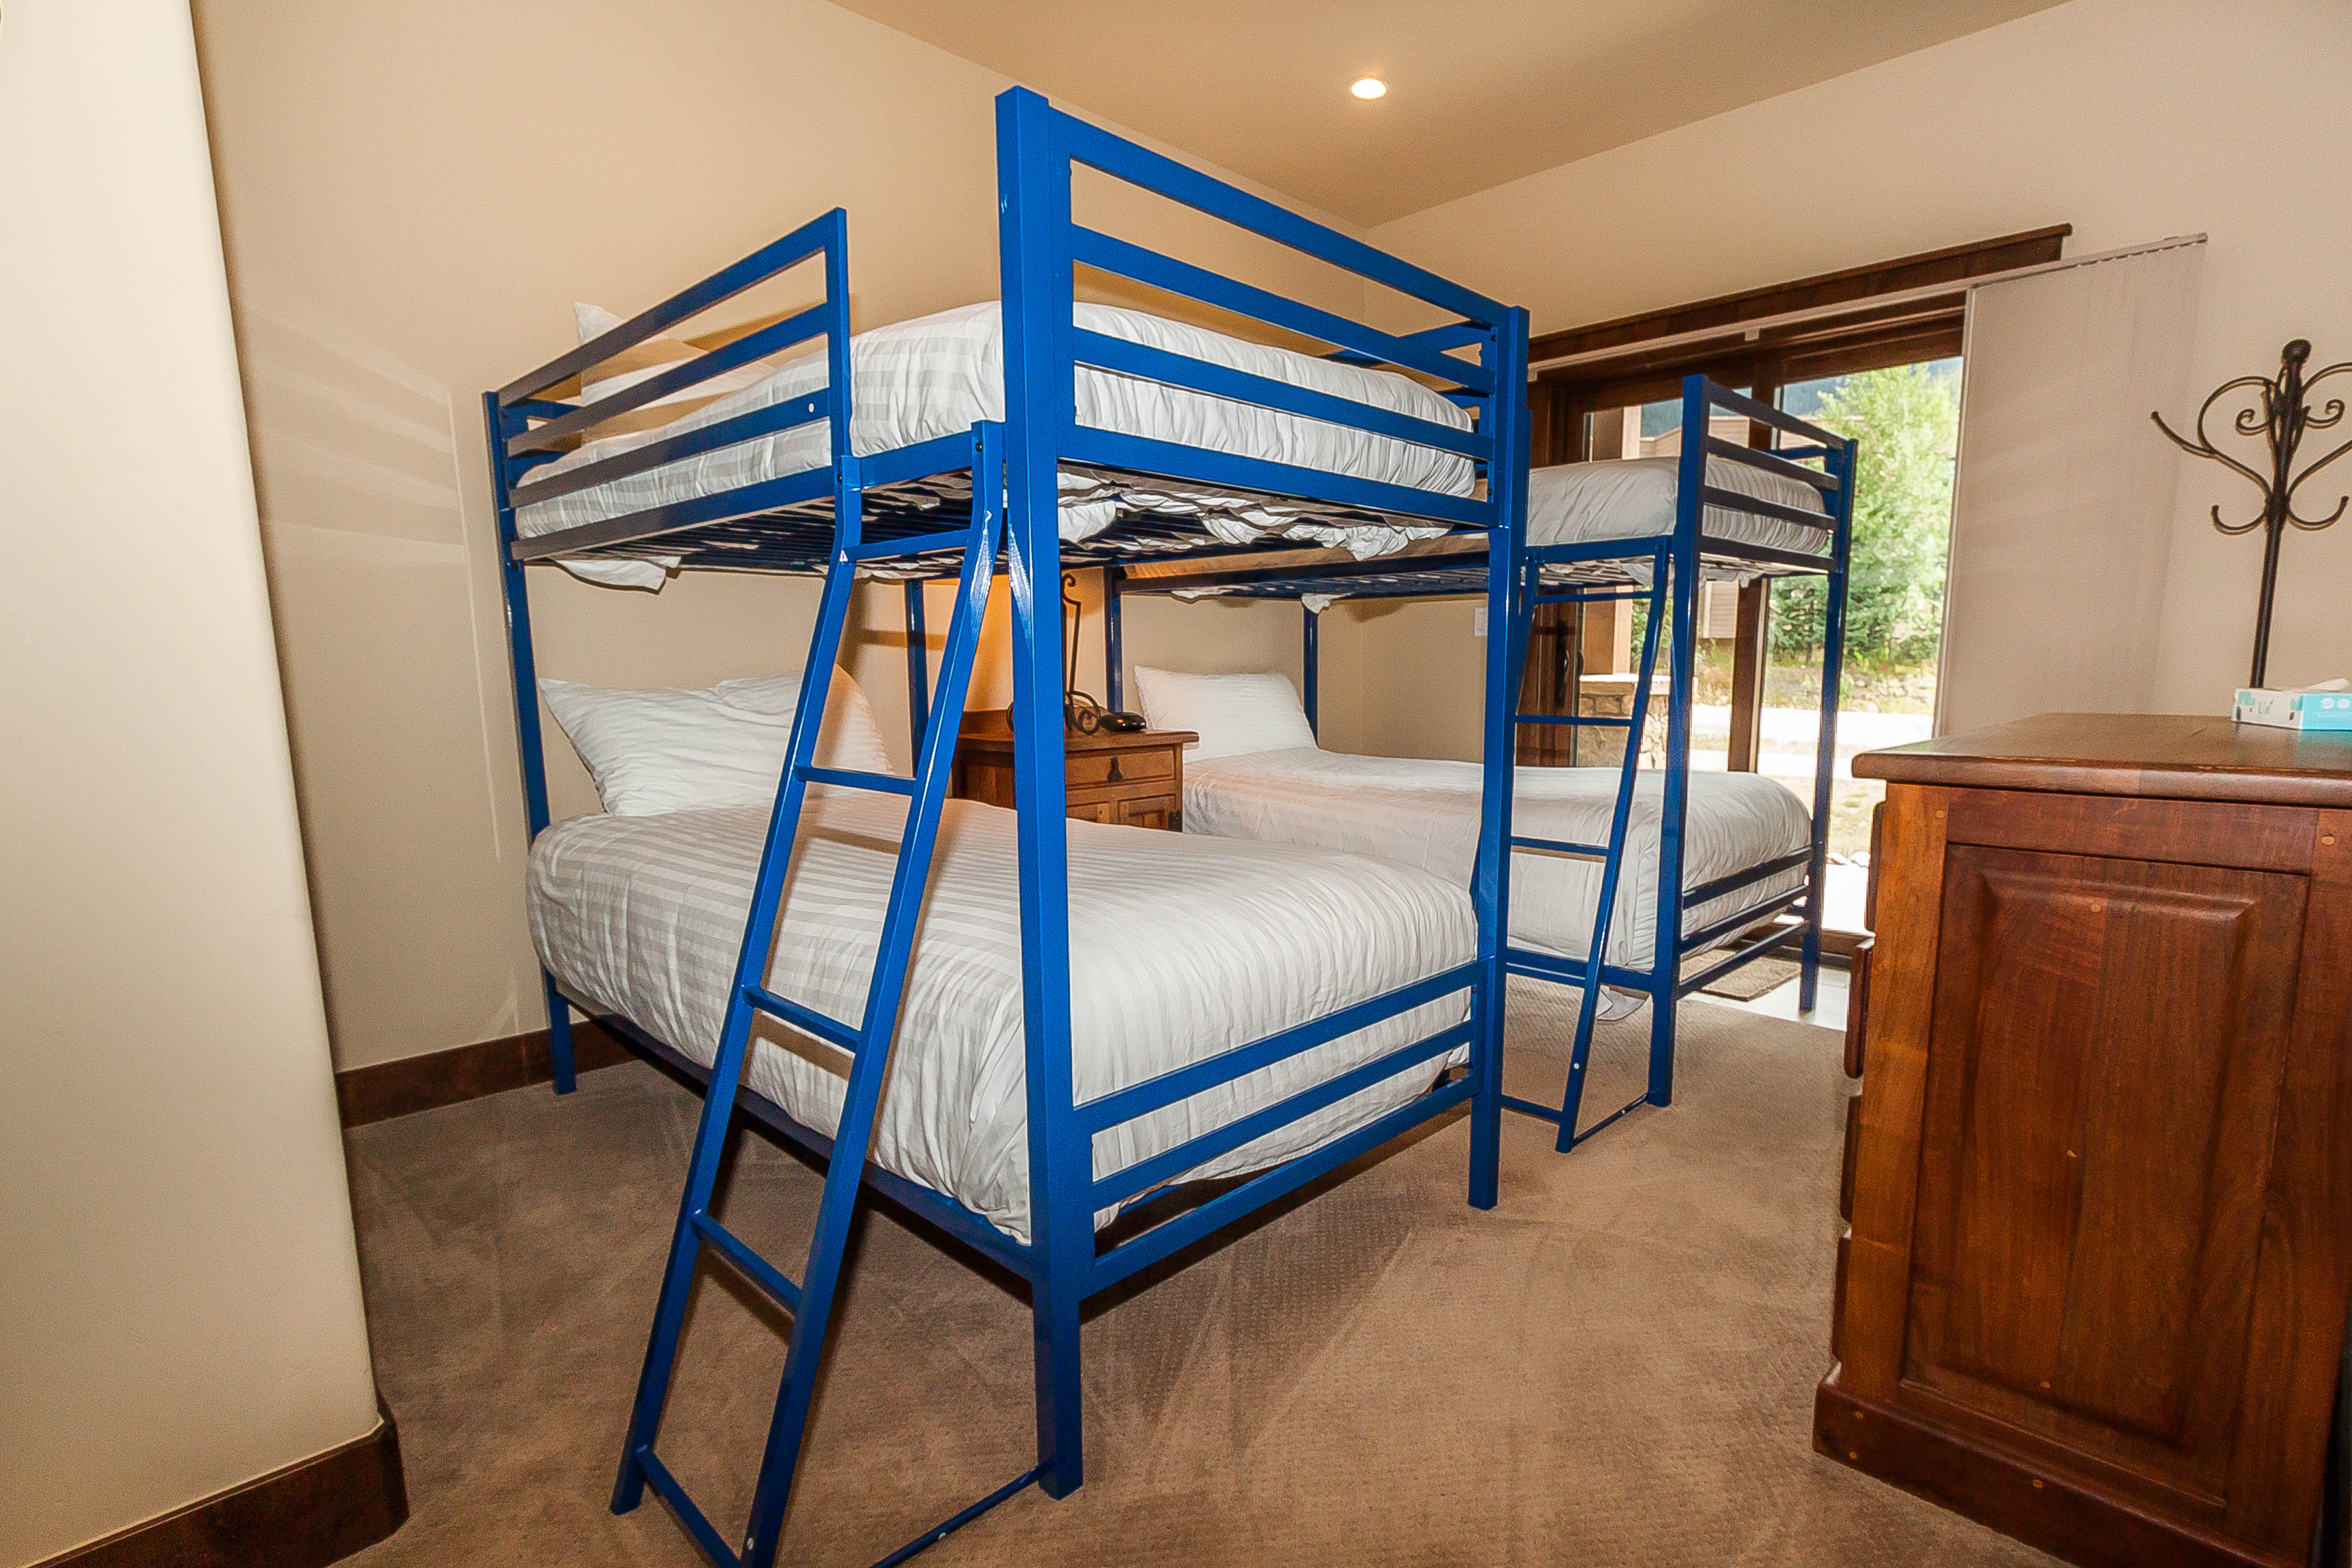 The guest bedroom is downstairs and features two twin-sized bunk beds with Ivory White Bedding and its own private patio.